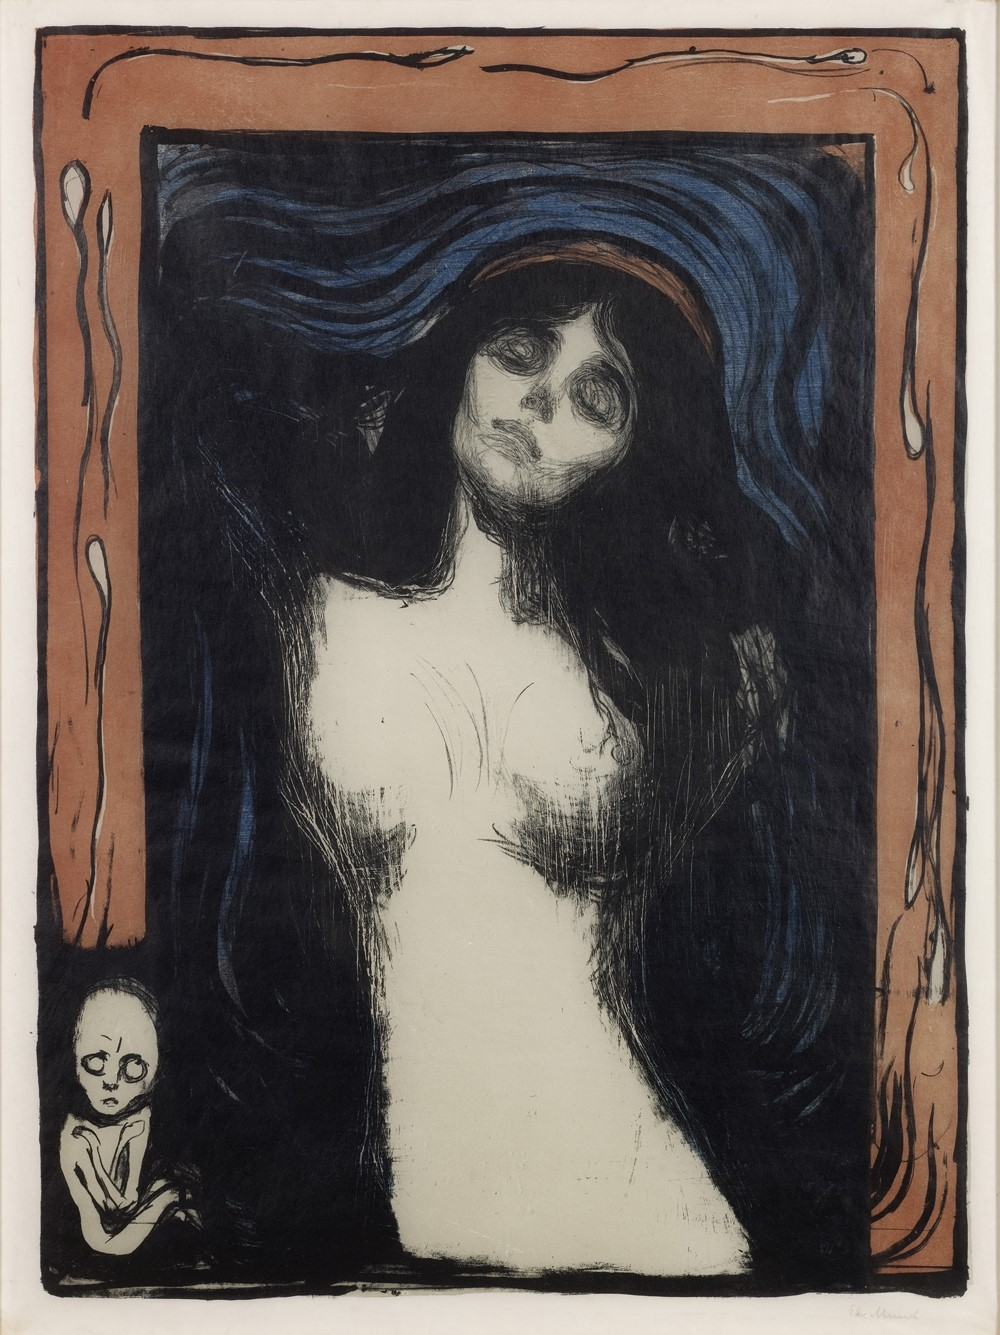 Munch Cuadros Edvard Munch A Genius Of Printmaking Another